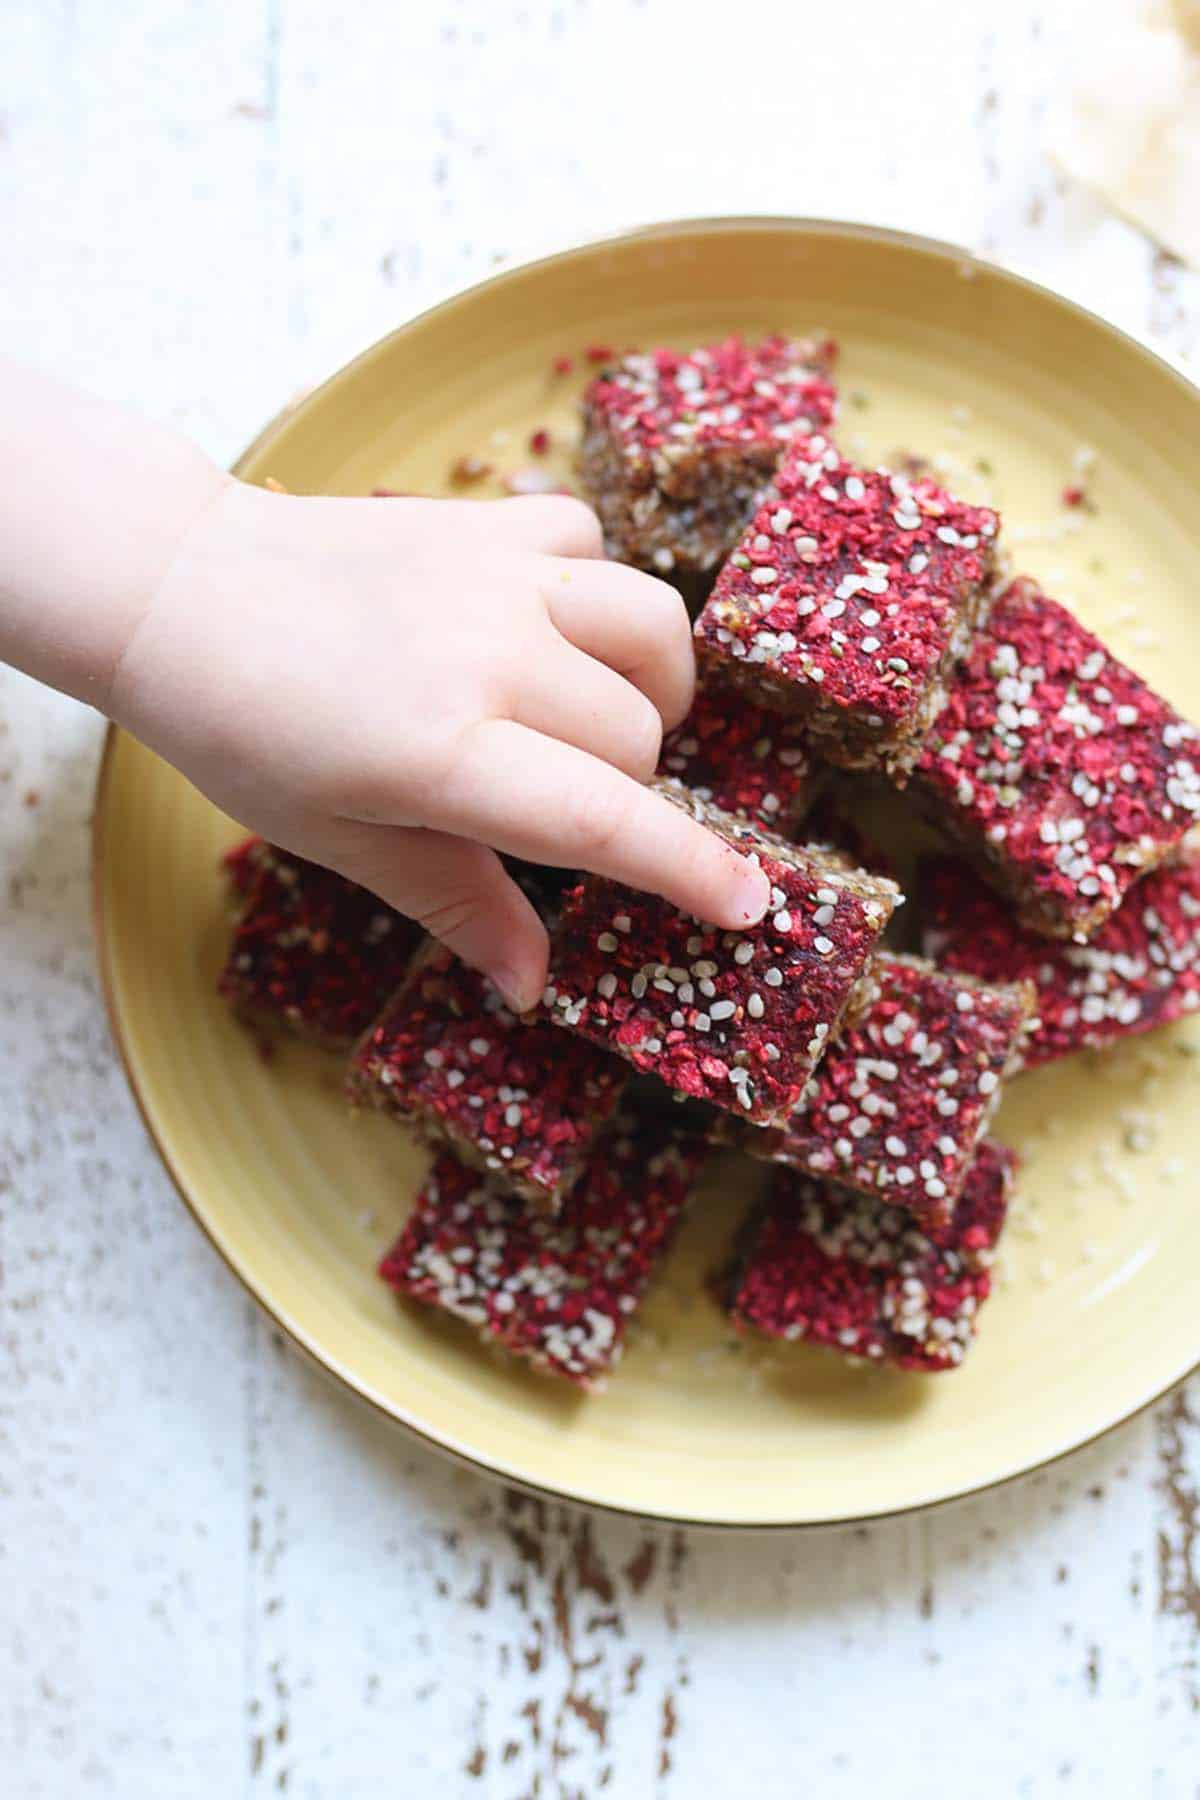 Birds eye view of granola bars on a yellow plate with a babies hand reaching for one.